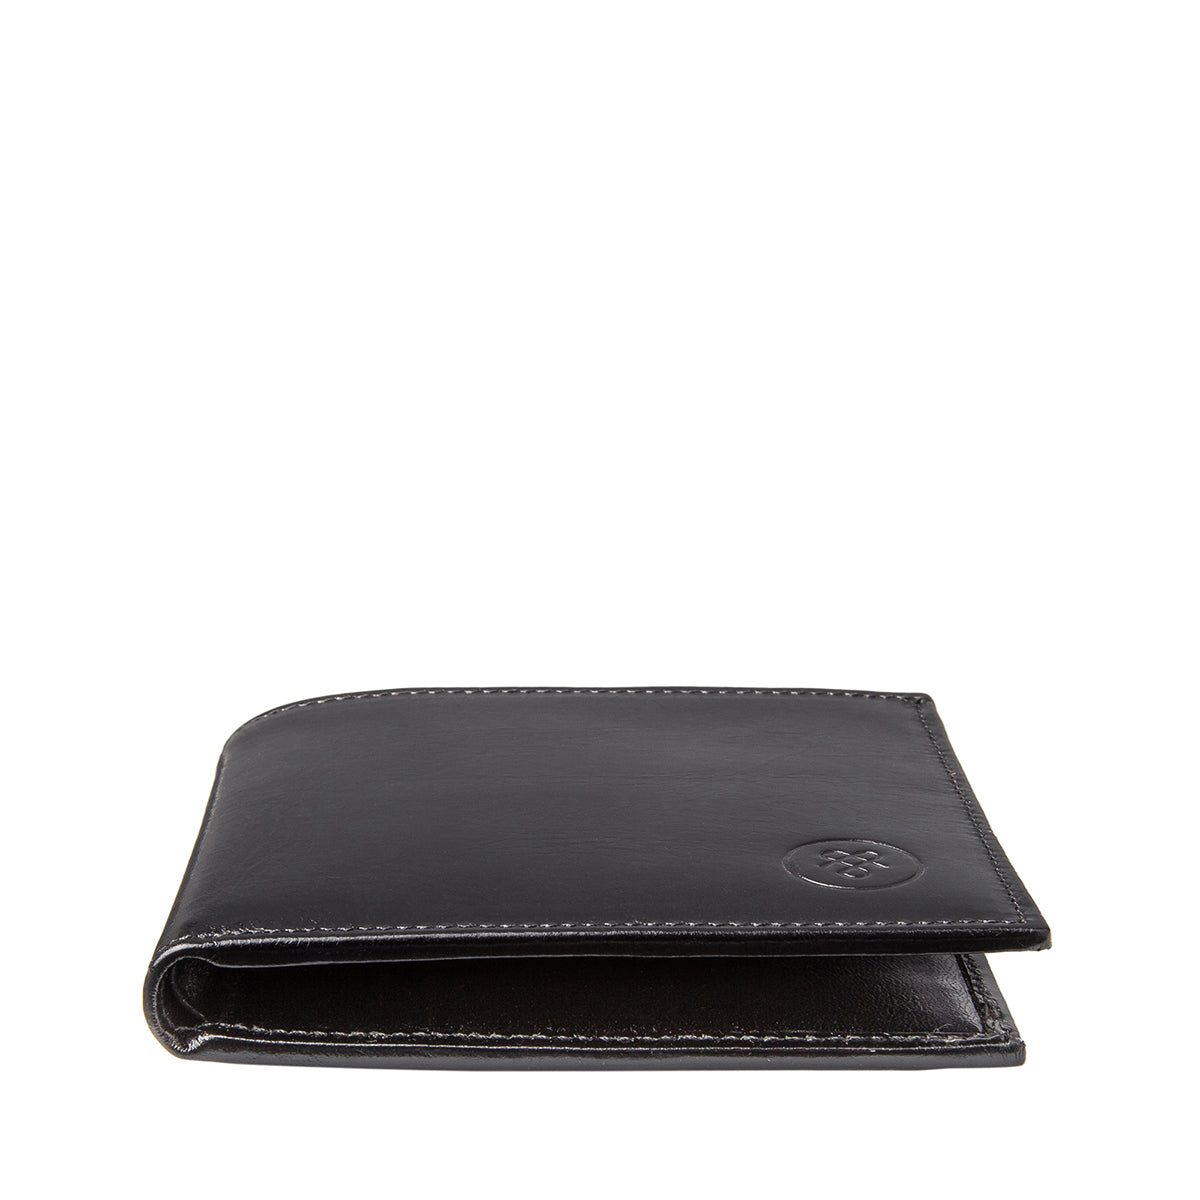 Image 5 of the 'Vittore' Black Veg-Tanned Leather Bi-Fold Wallet